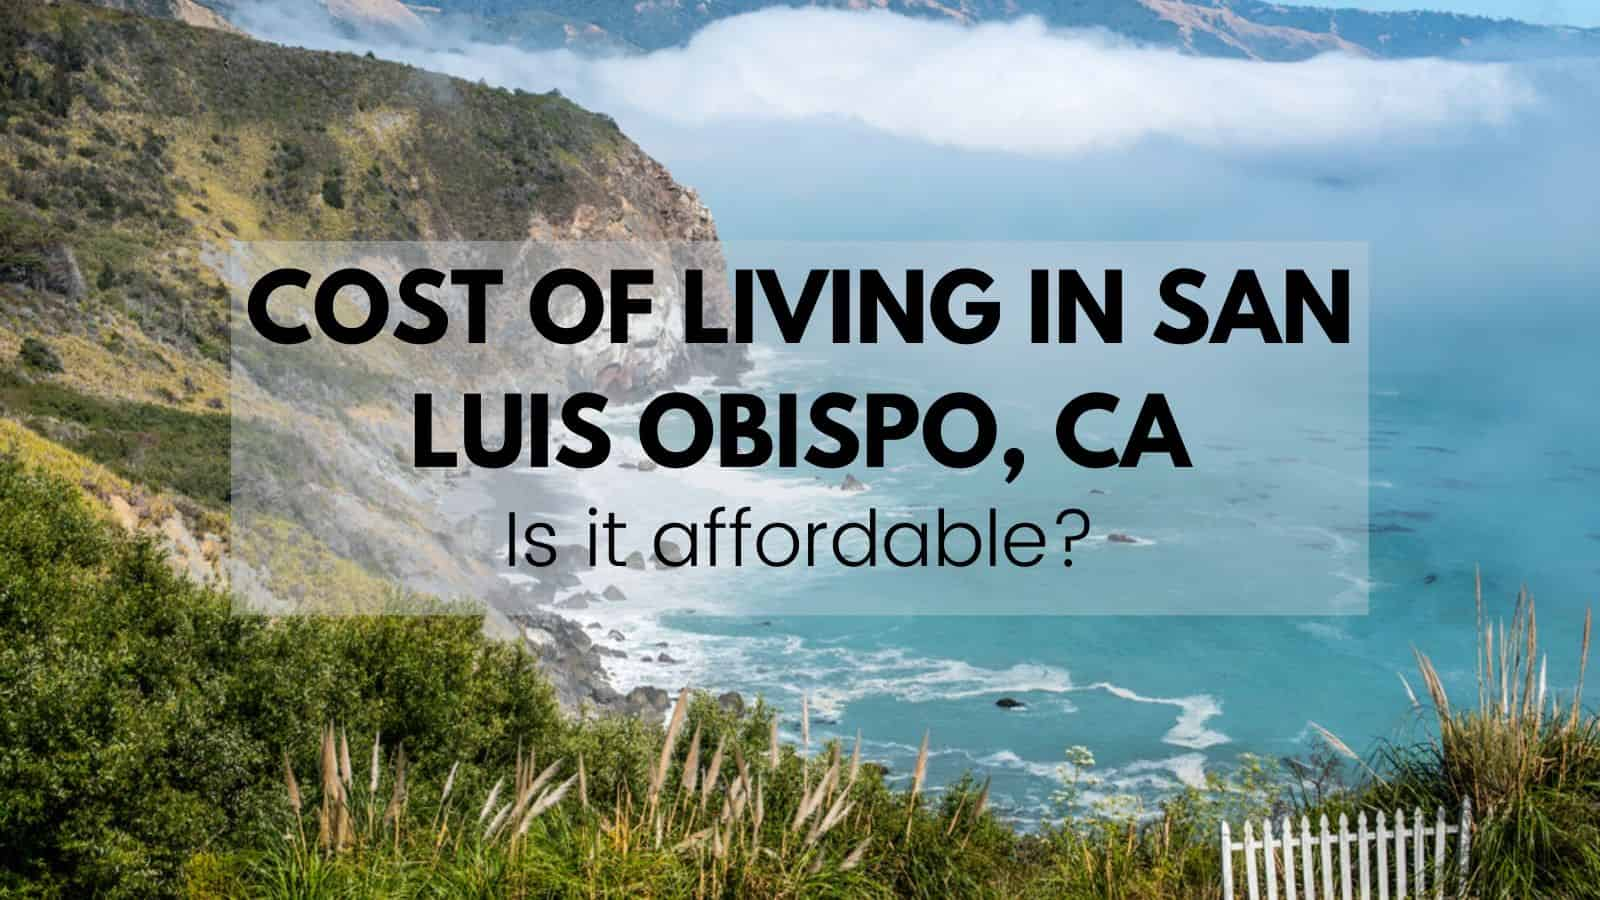 San Luis Obispo Cost Of Living 2020 Is It Affordable Data Mentors Moving Storage